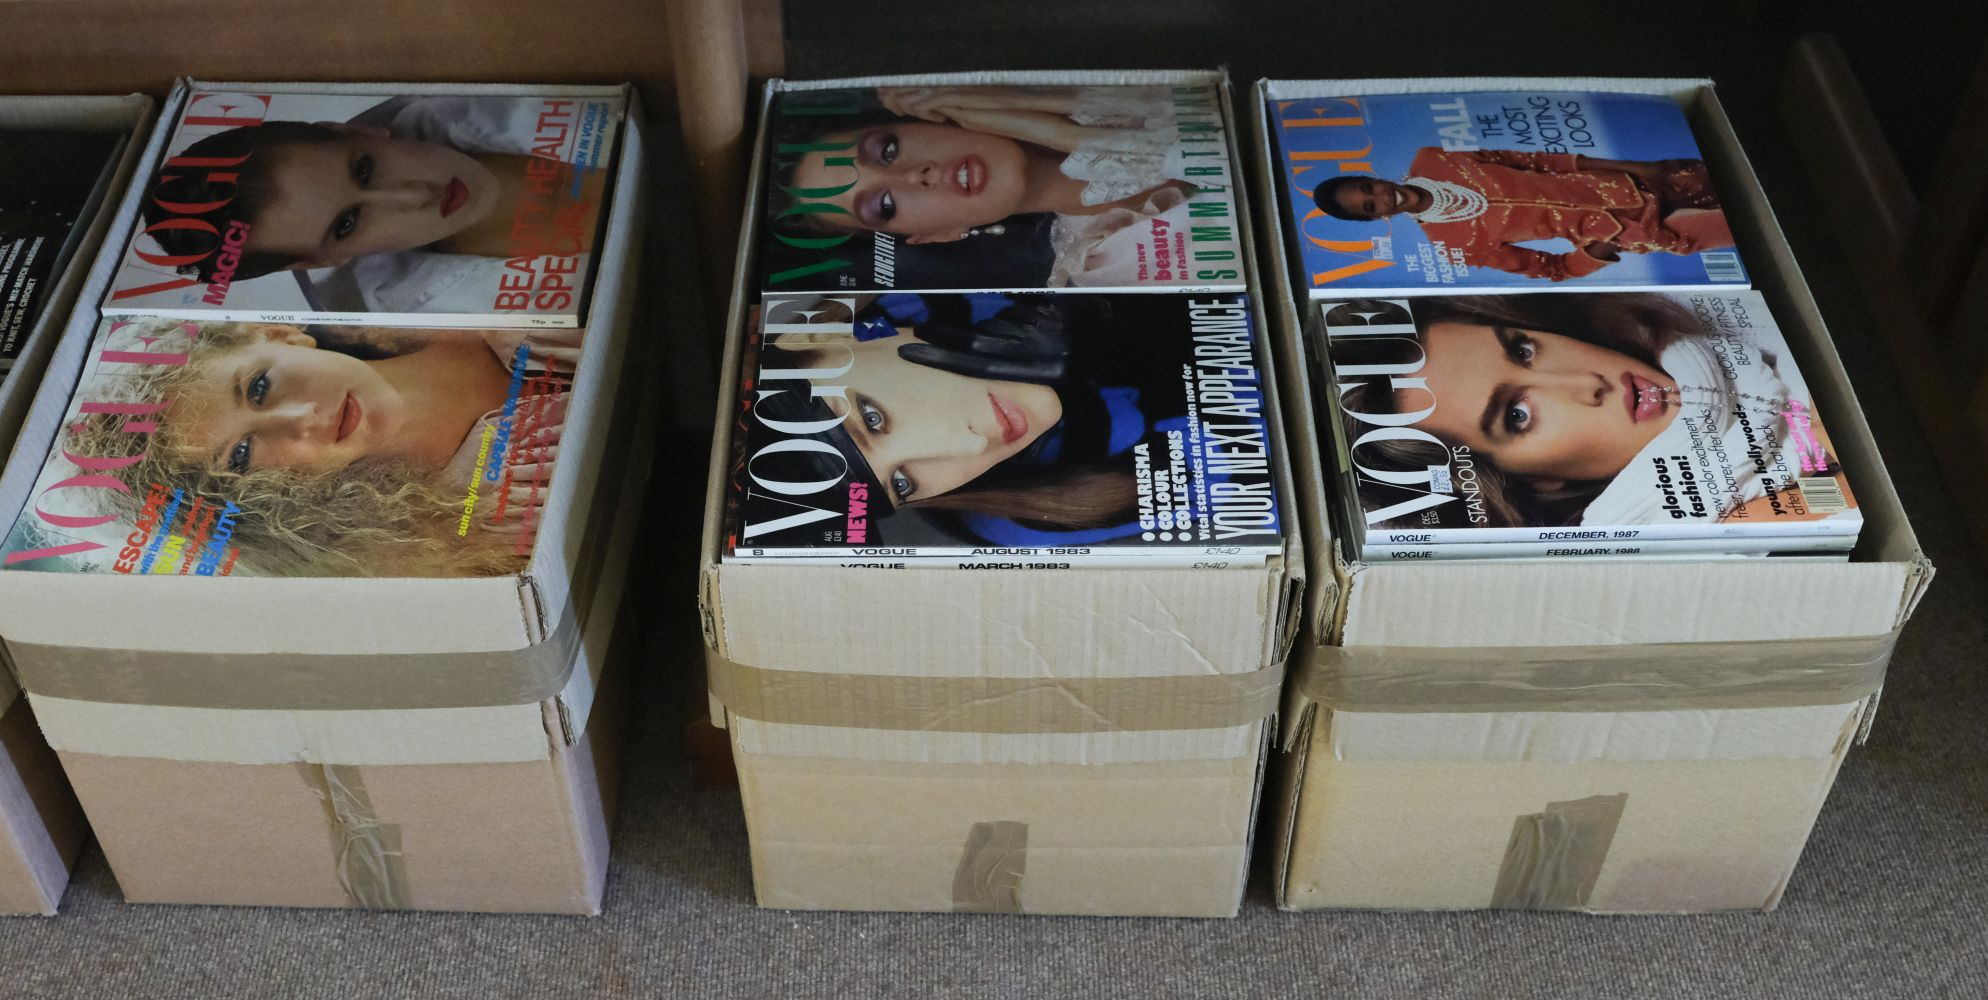 Vogue. 340 issues, 1970s/1980s - Image 2 of 2